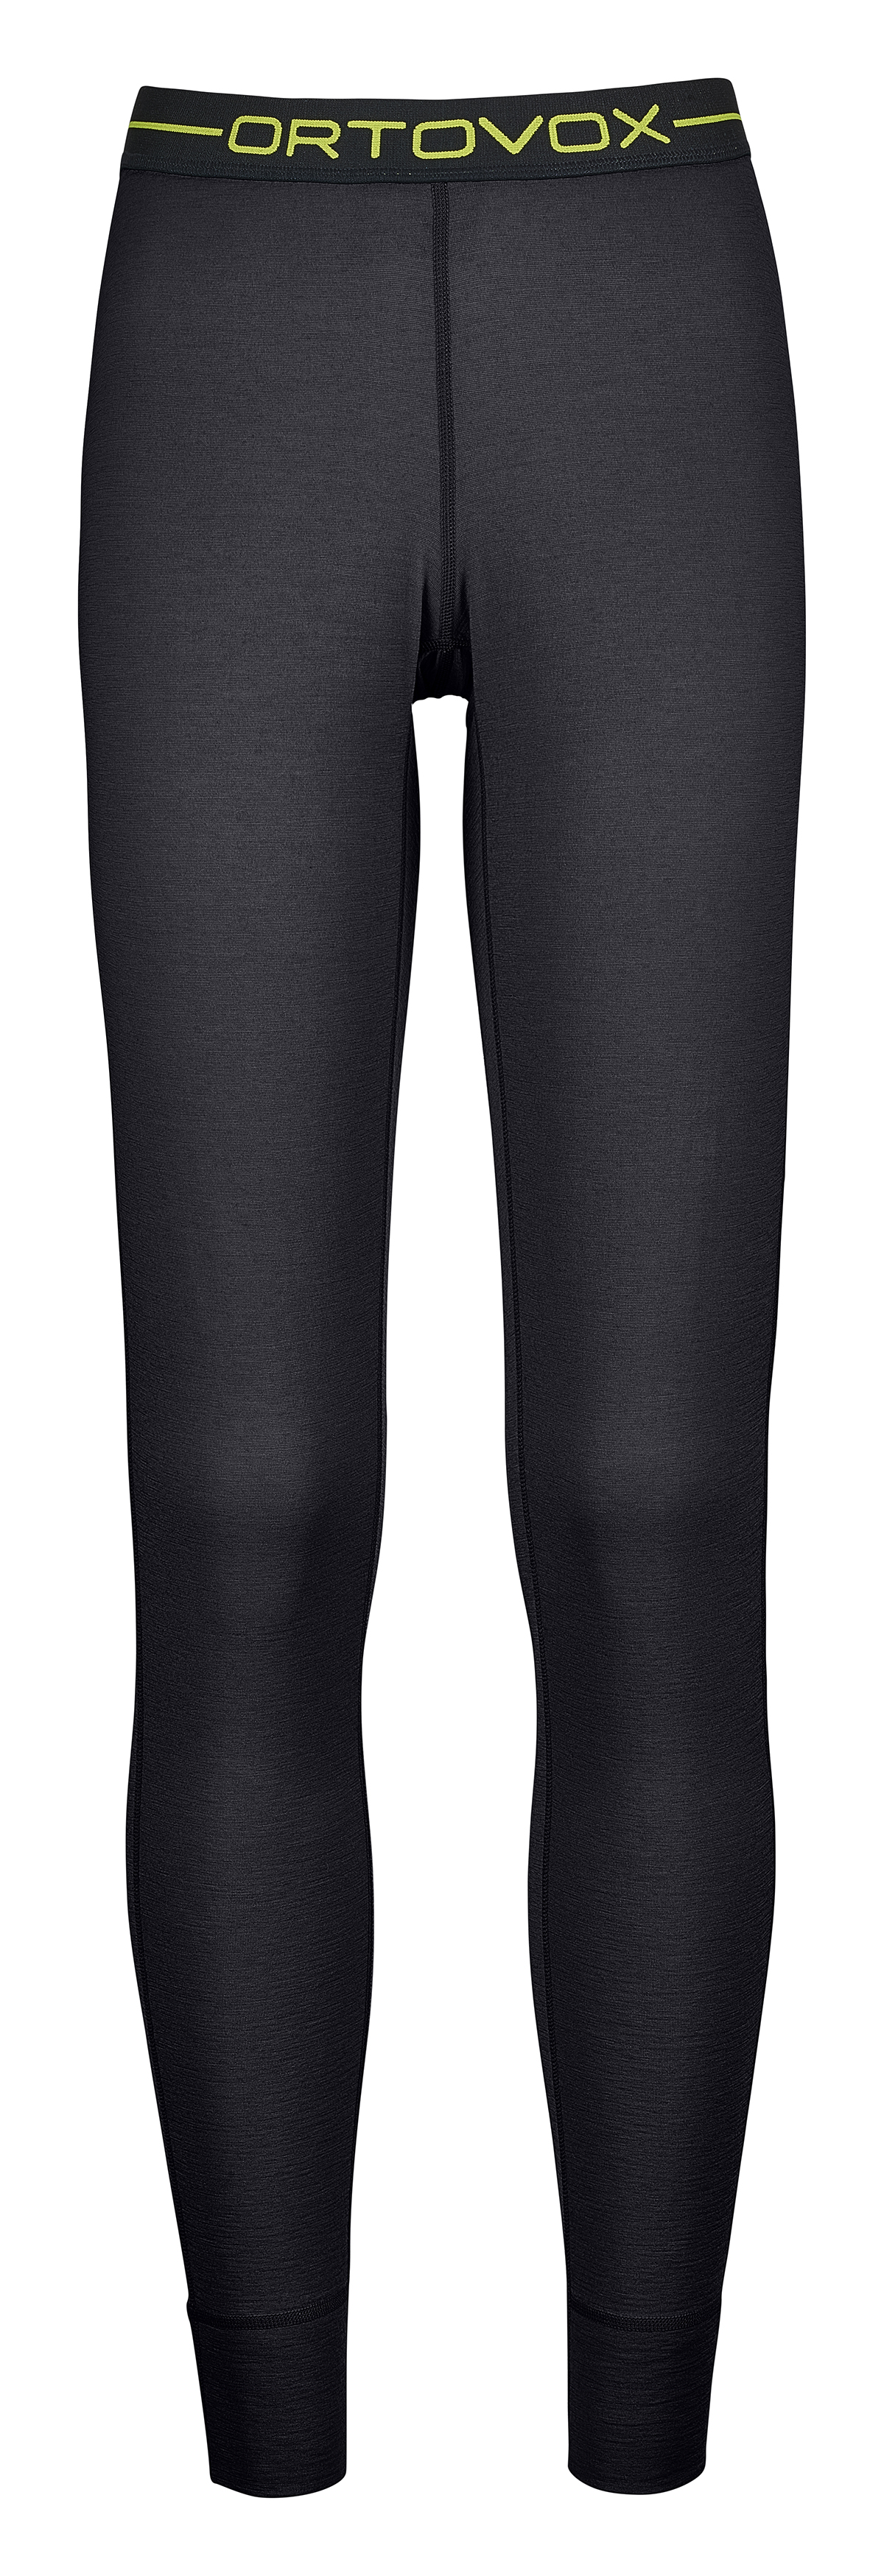 Ortovox W's 145 Ultra Long Pants